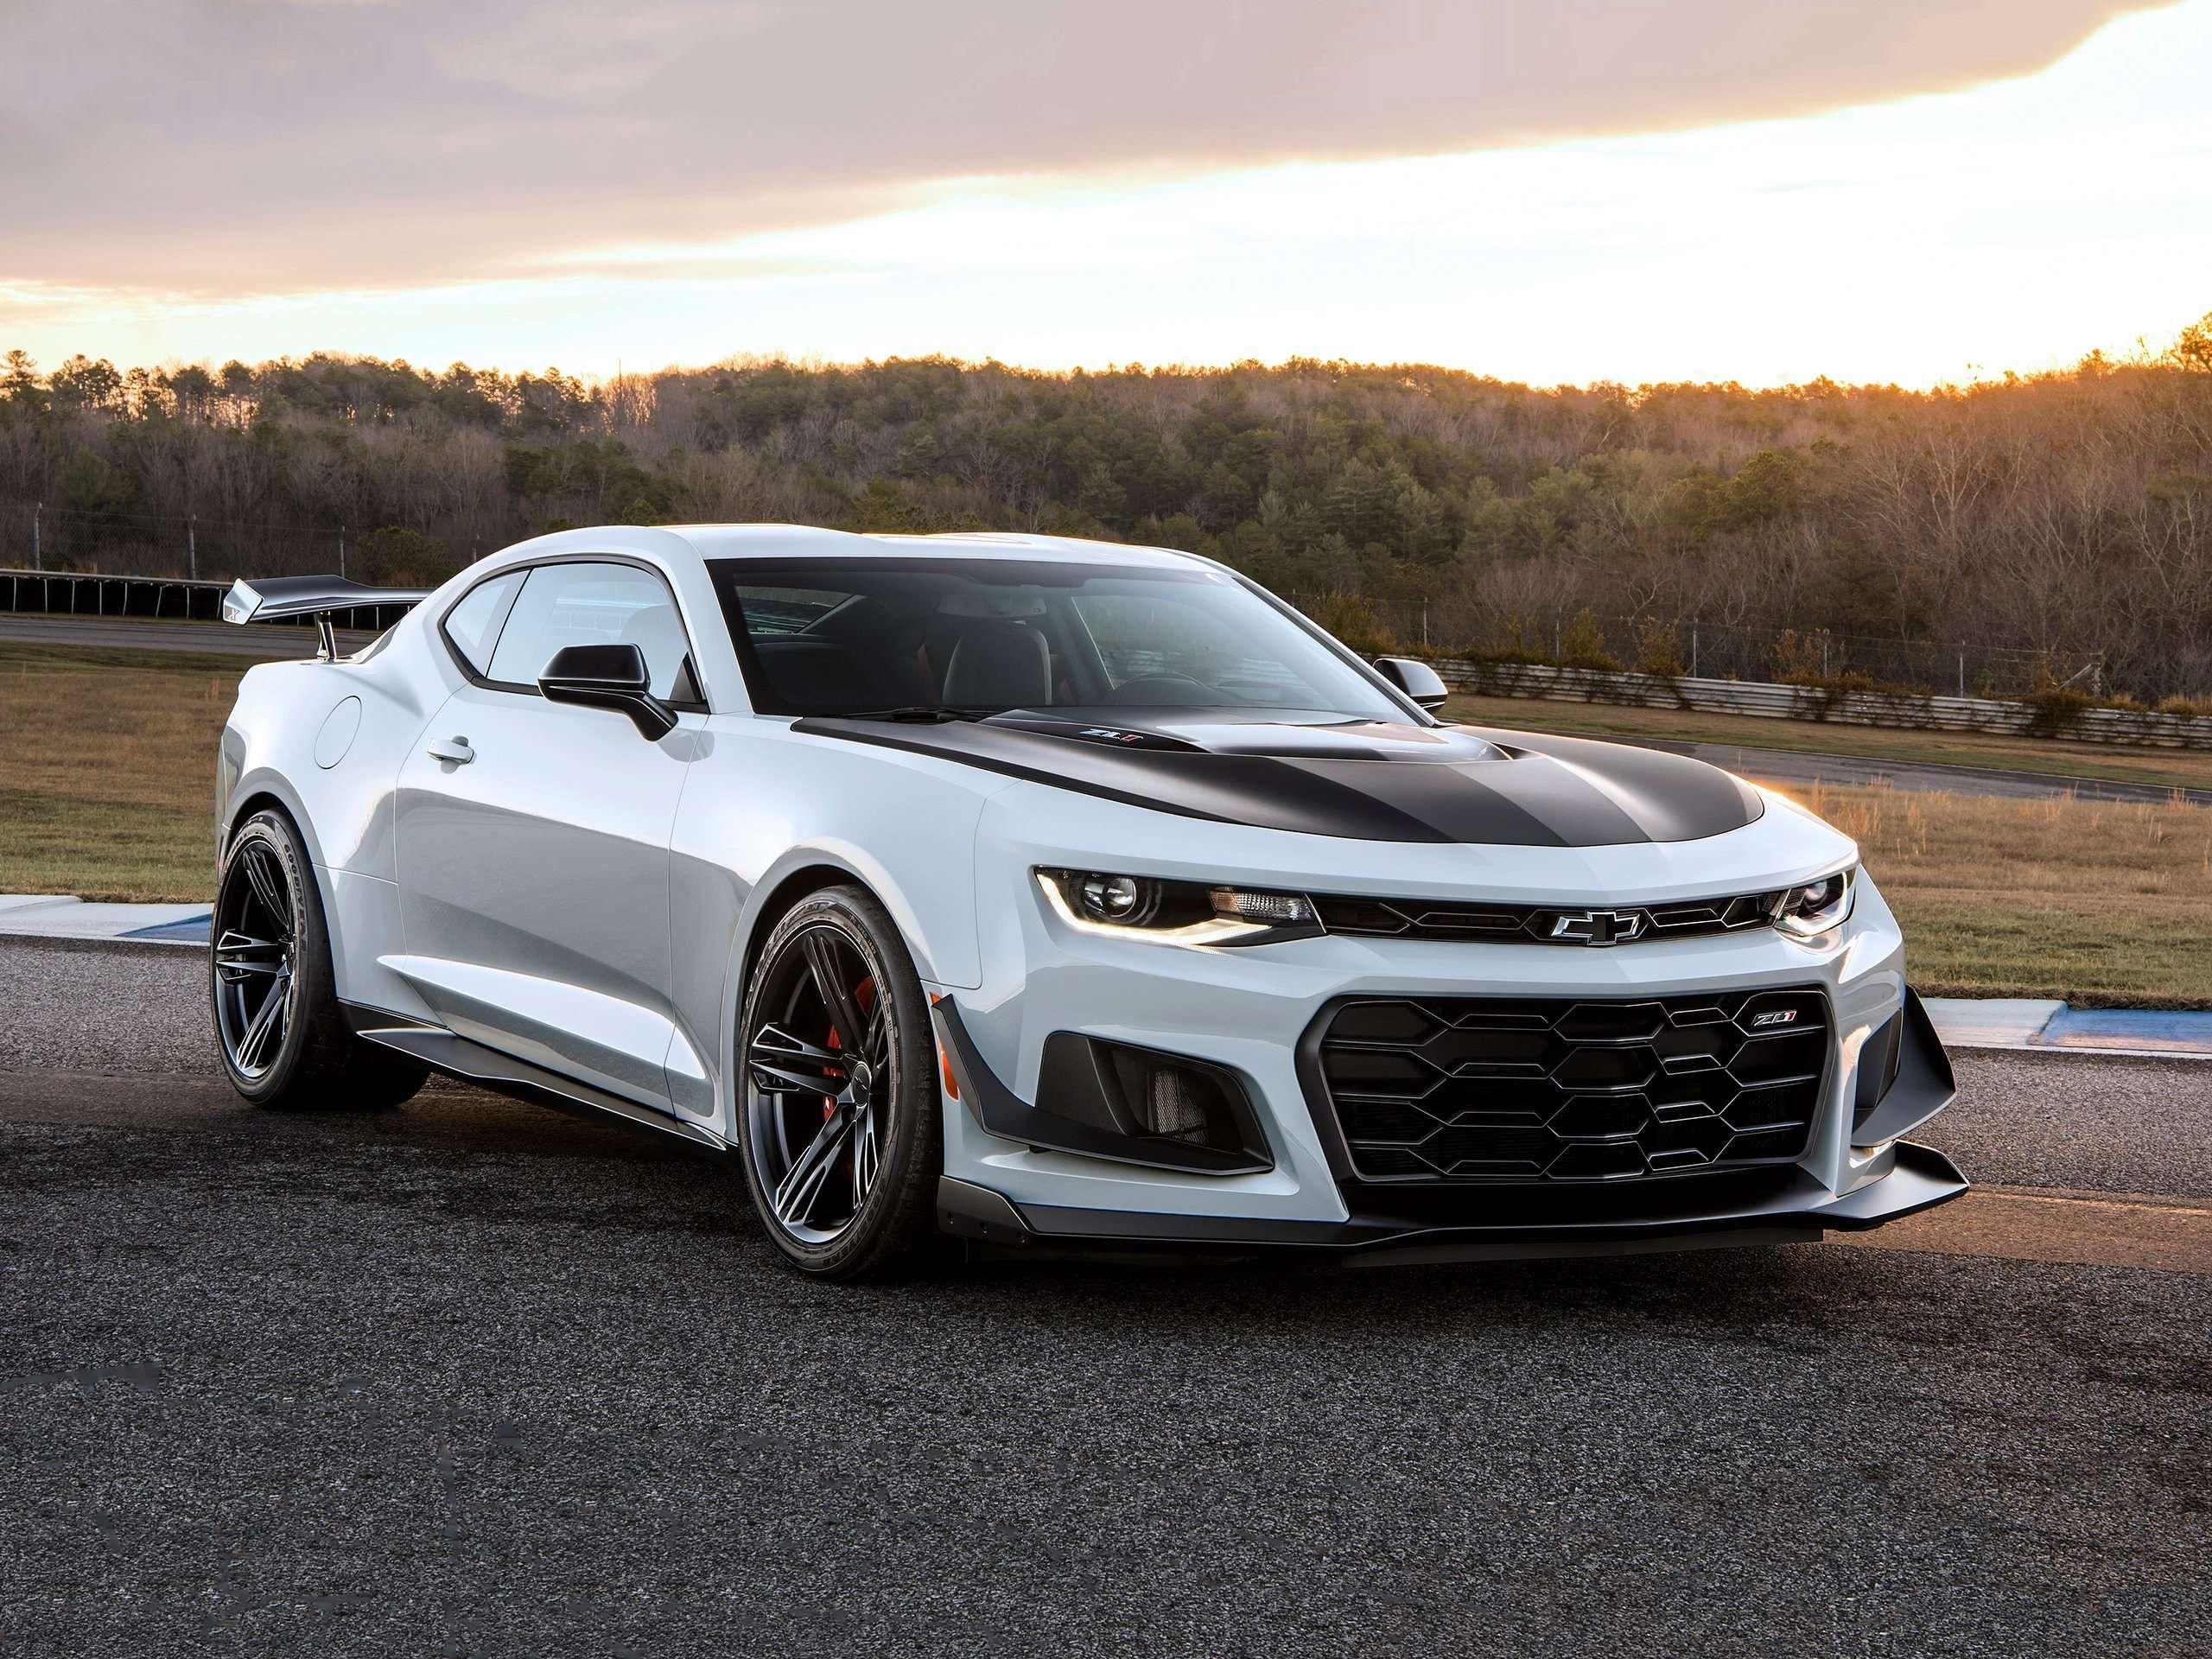 Wallpapers Chevrolet Camaro ZL1 1LE, 2018, Automotive / Cars,